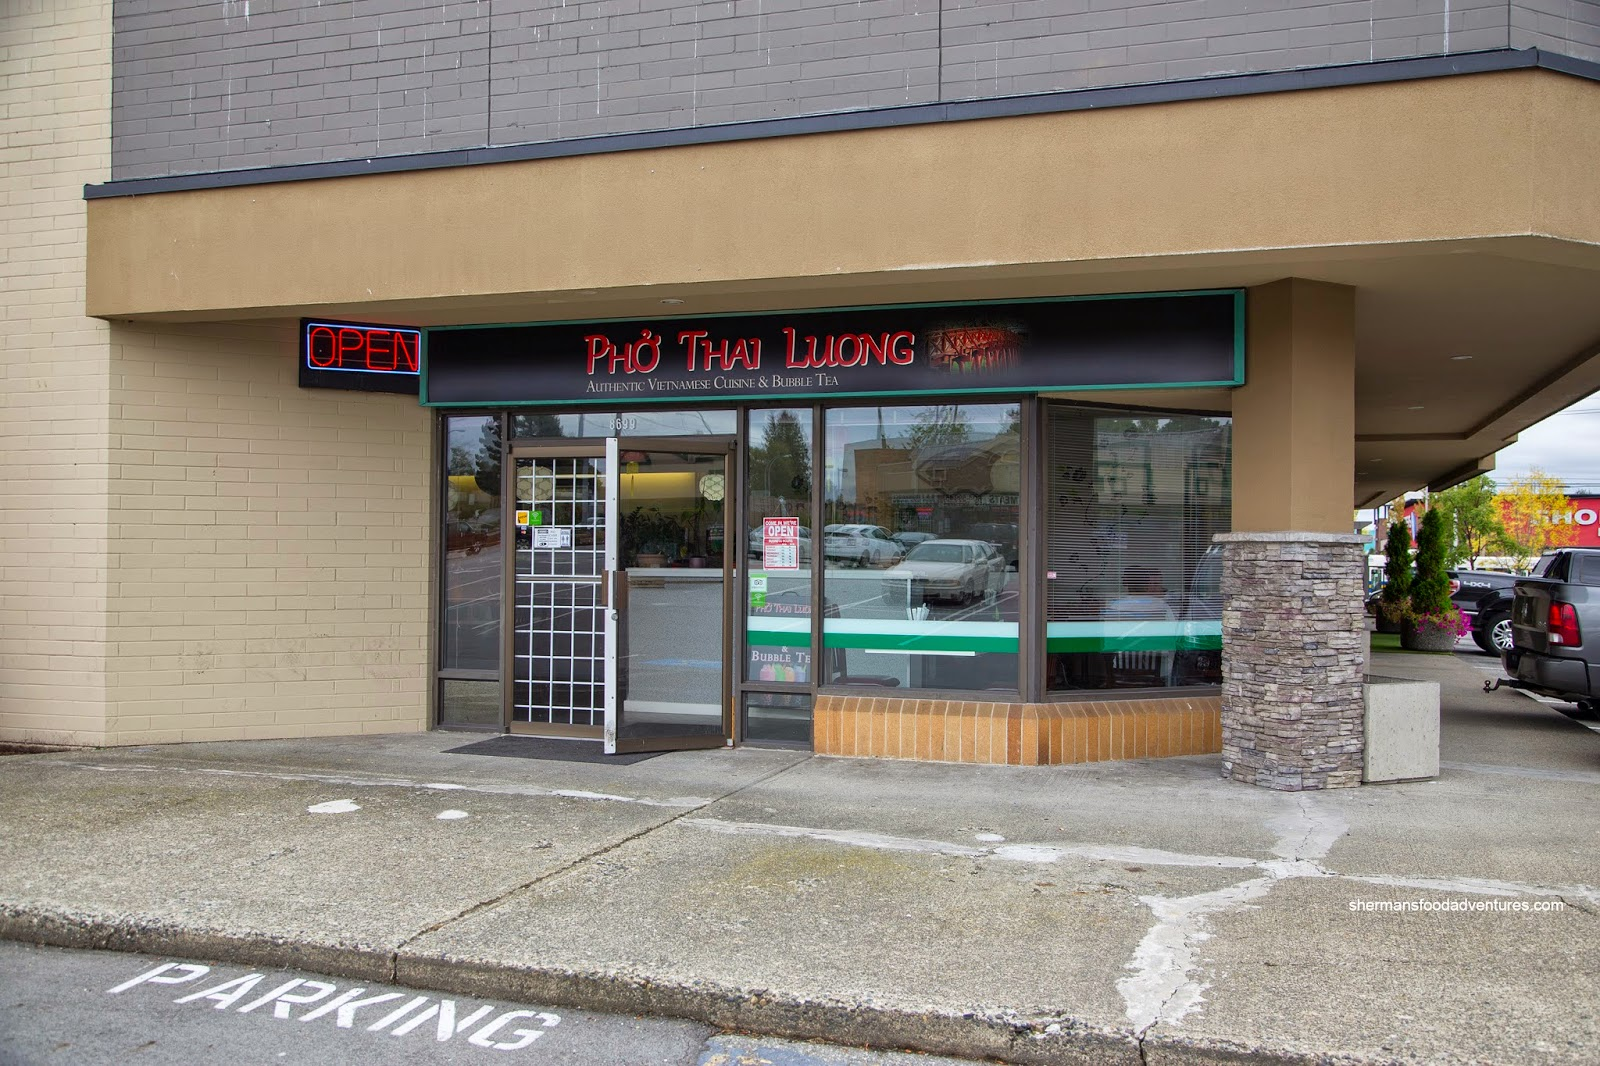 Here we go again... The turnstile of restaurants otherwise known as that hidden location inside the plaza on the Southwest corner of Nordel and Scott Road ... & Shermanu0027s Food Adventures: Pho Thai Luong